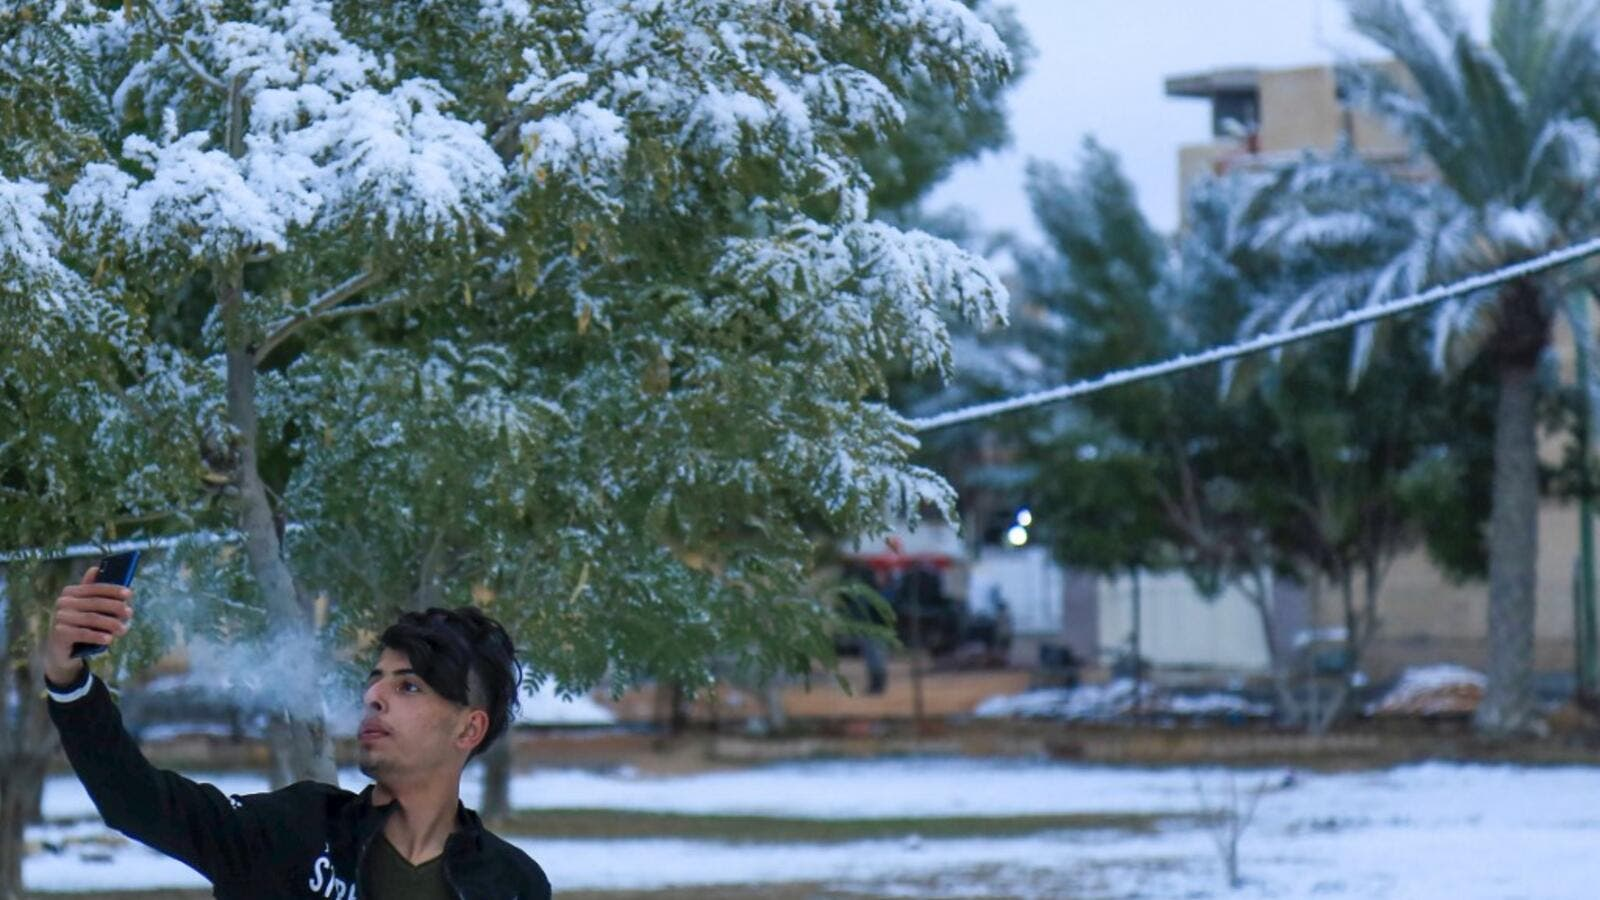 Iraqi capital Baghdad receives 2nd snowfall in a century